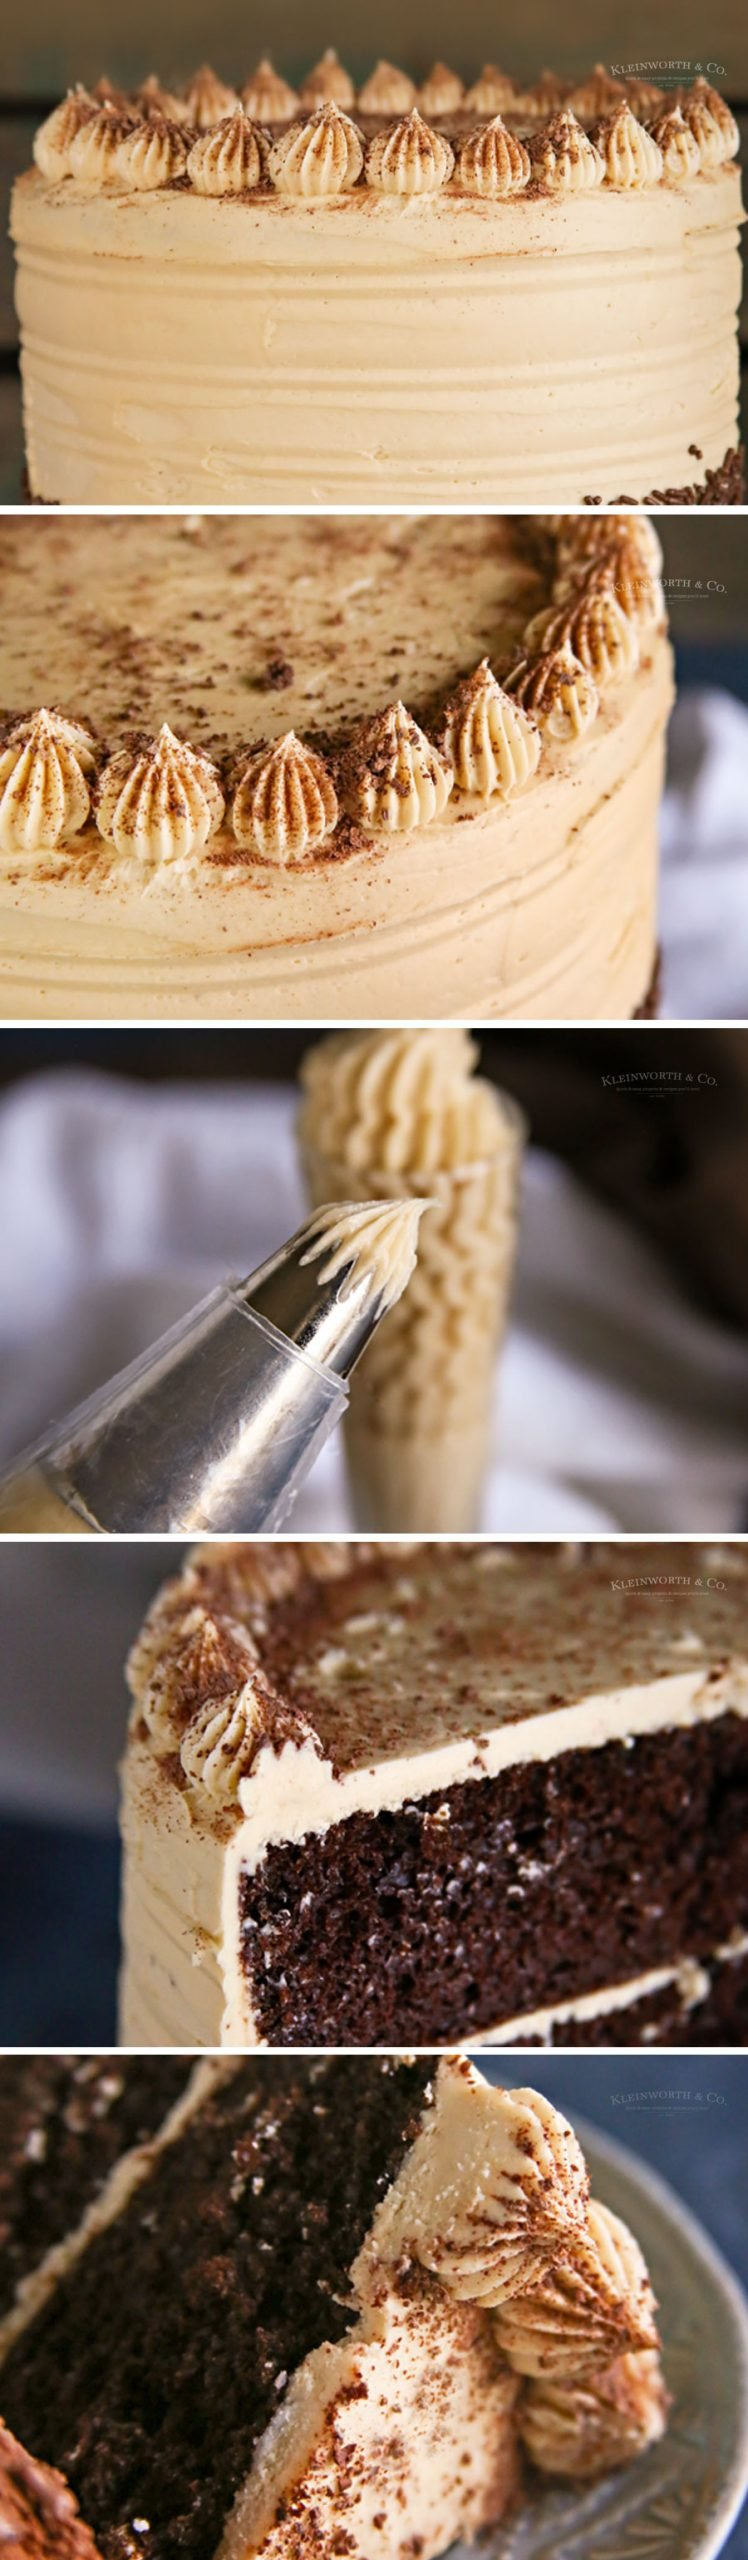 how to make Coffee Buttercream Frosting